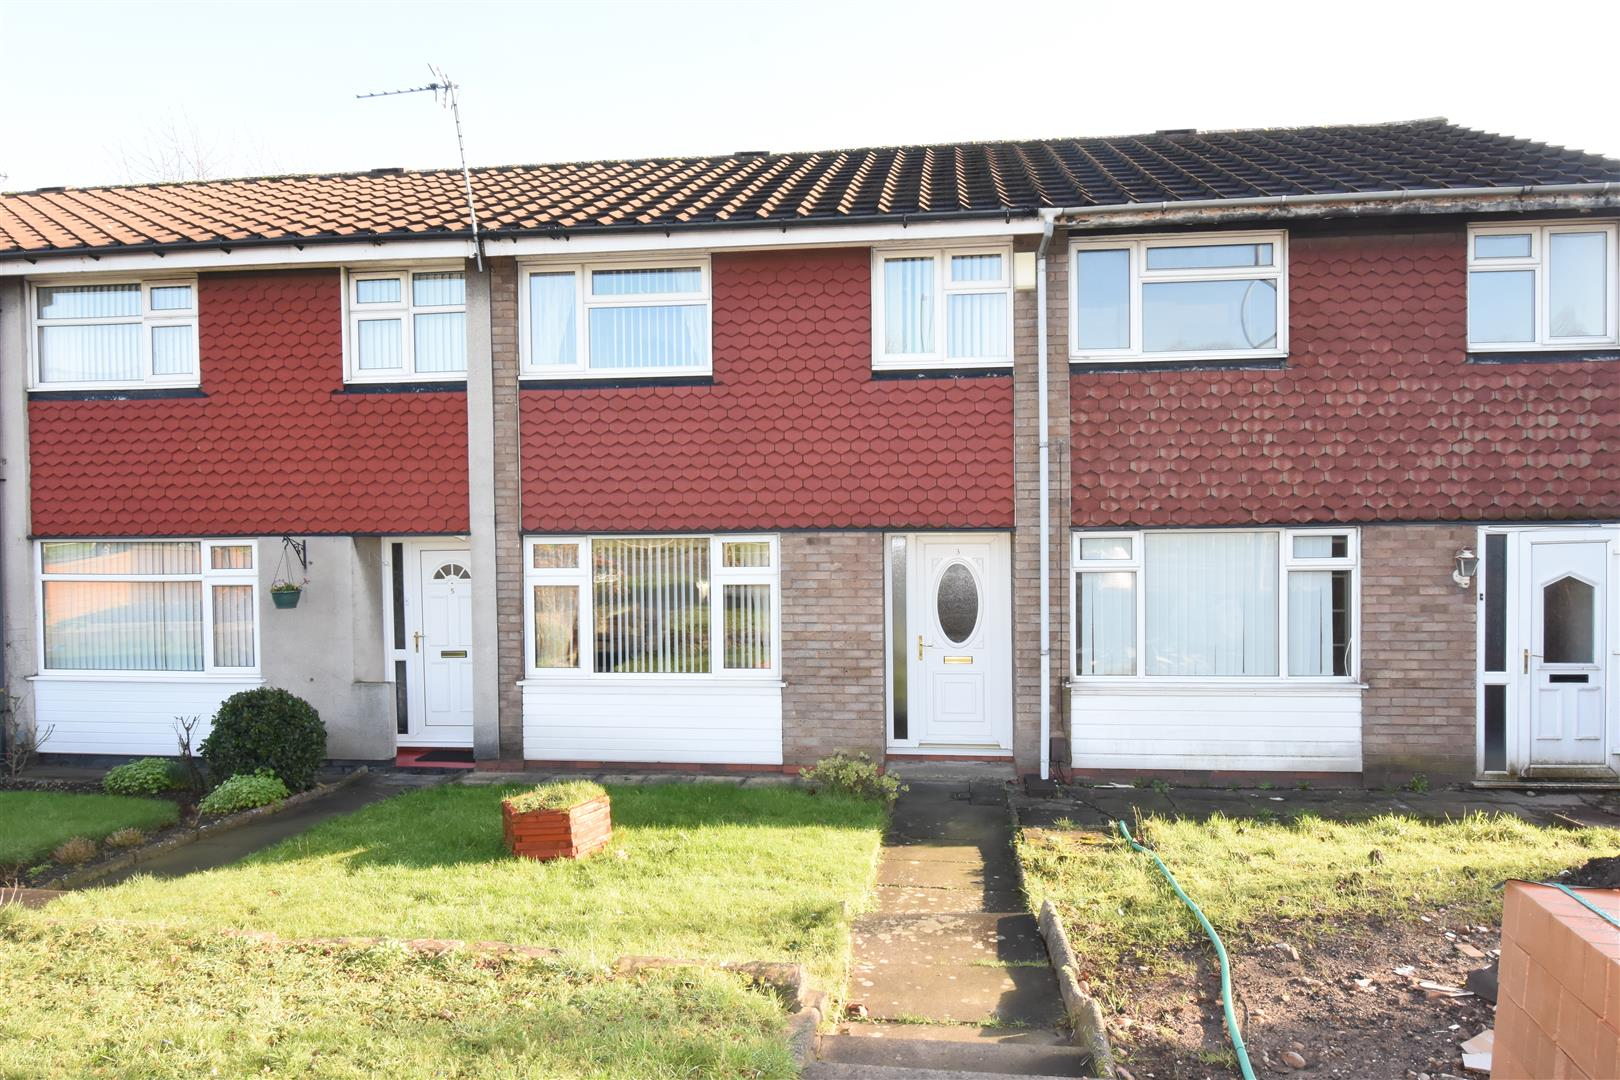 3 bed  for sale in Bromford Drive, Bromford Bridge, Birmingham, B36